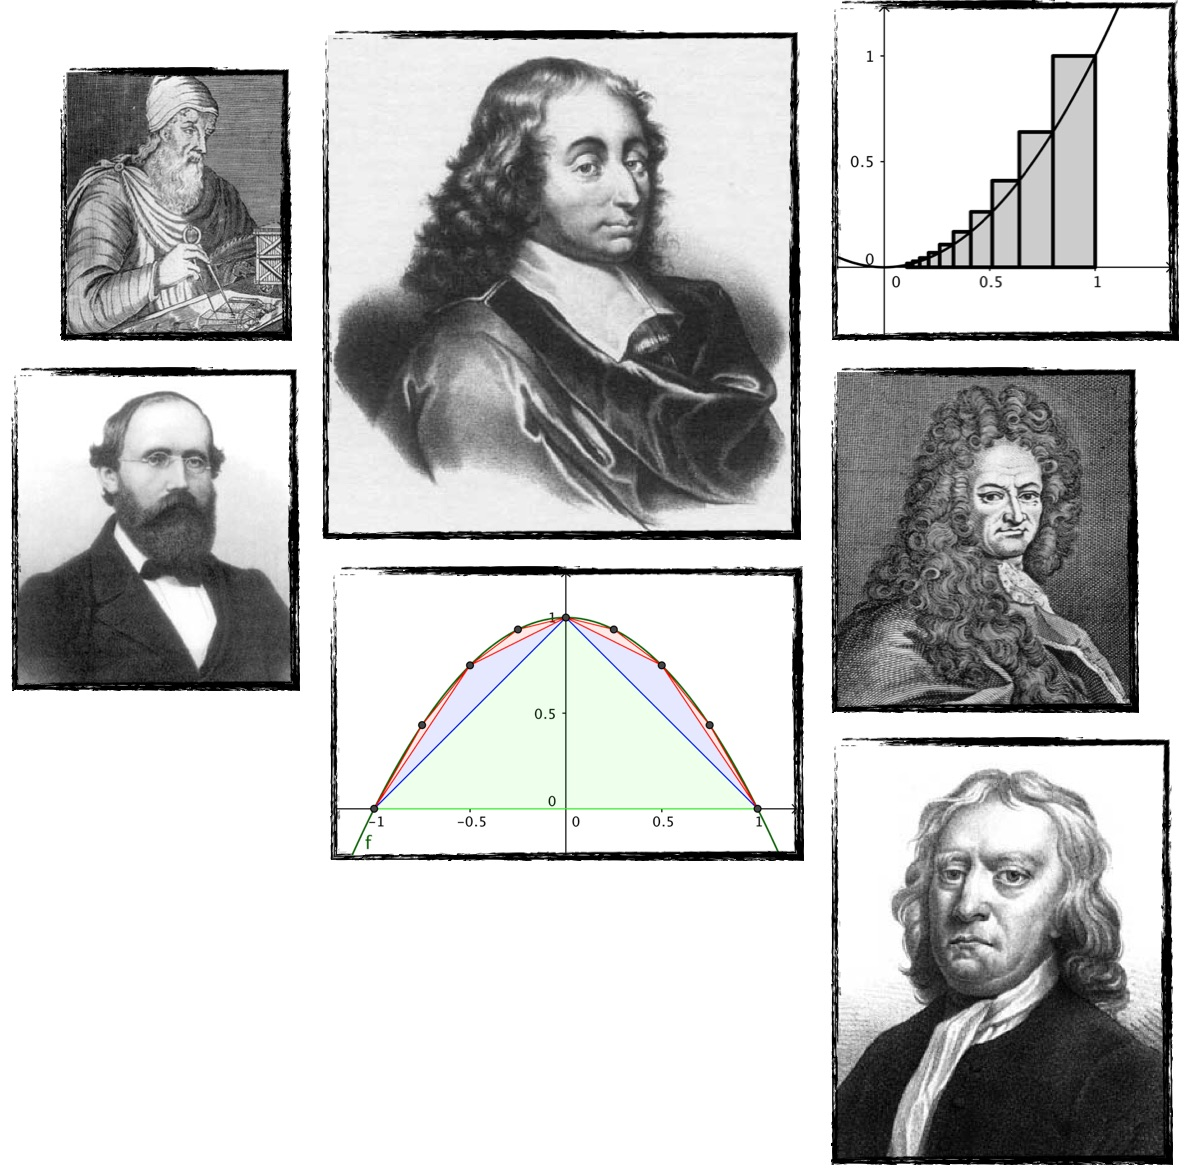 [The Area of a Parabola from Archimedes to Riemann]